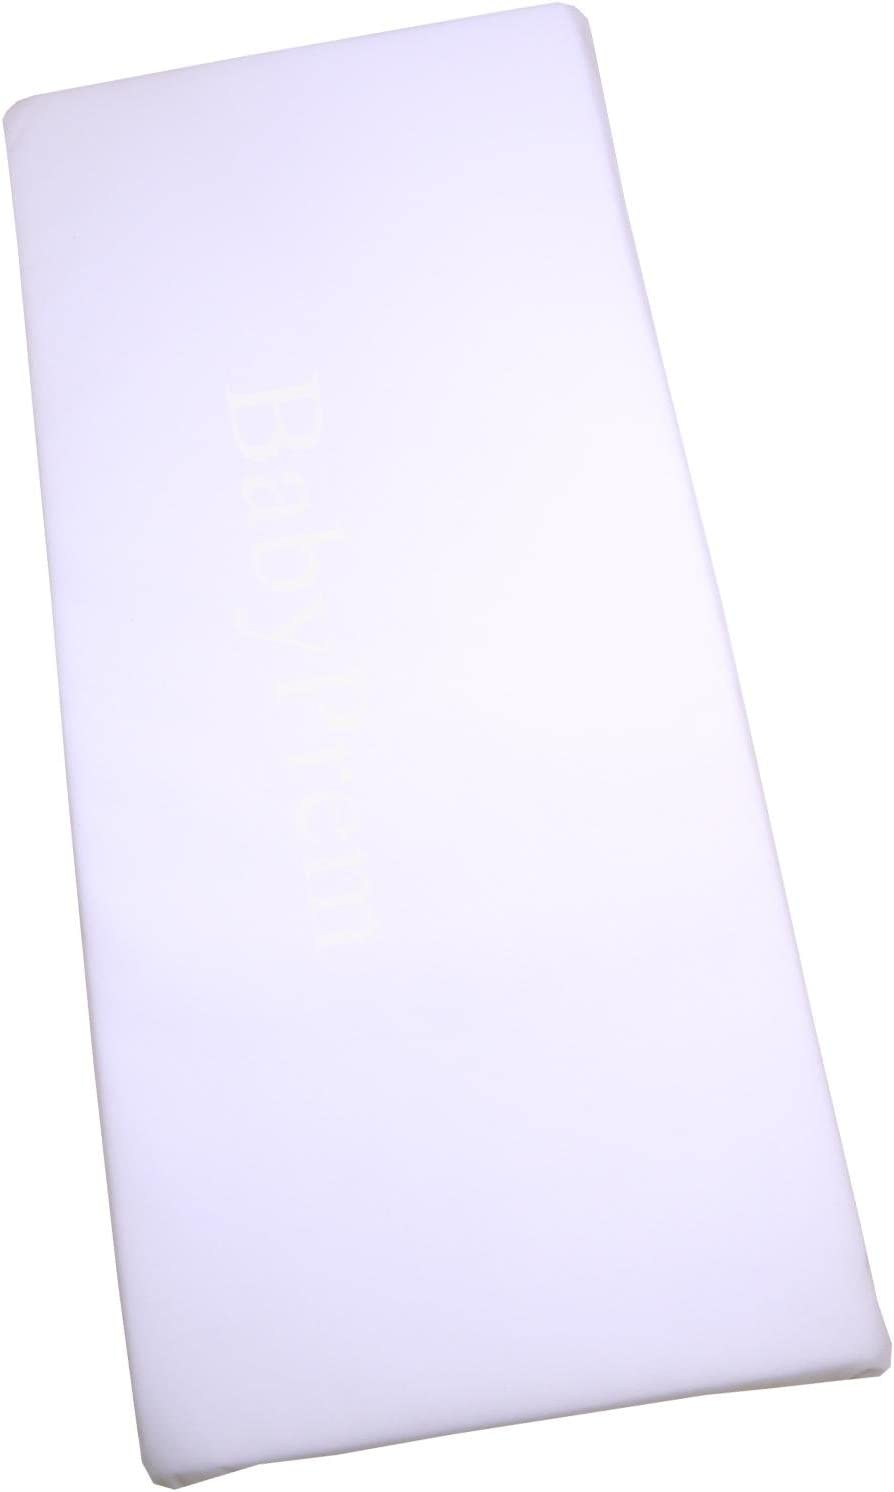 Crib//Cradle Mattress 90 x 40 x 3.5 cm Standard or Quilted Option Quilted